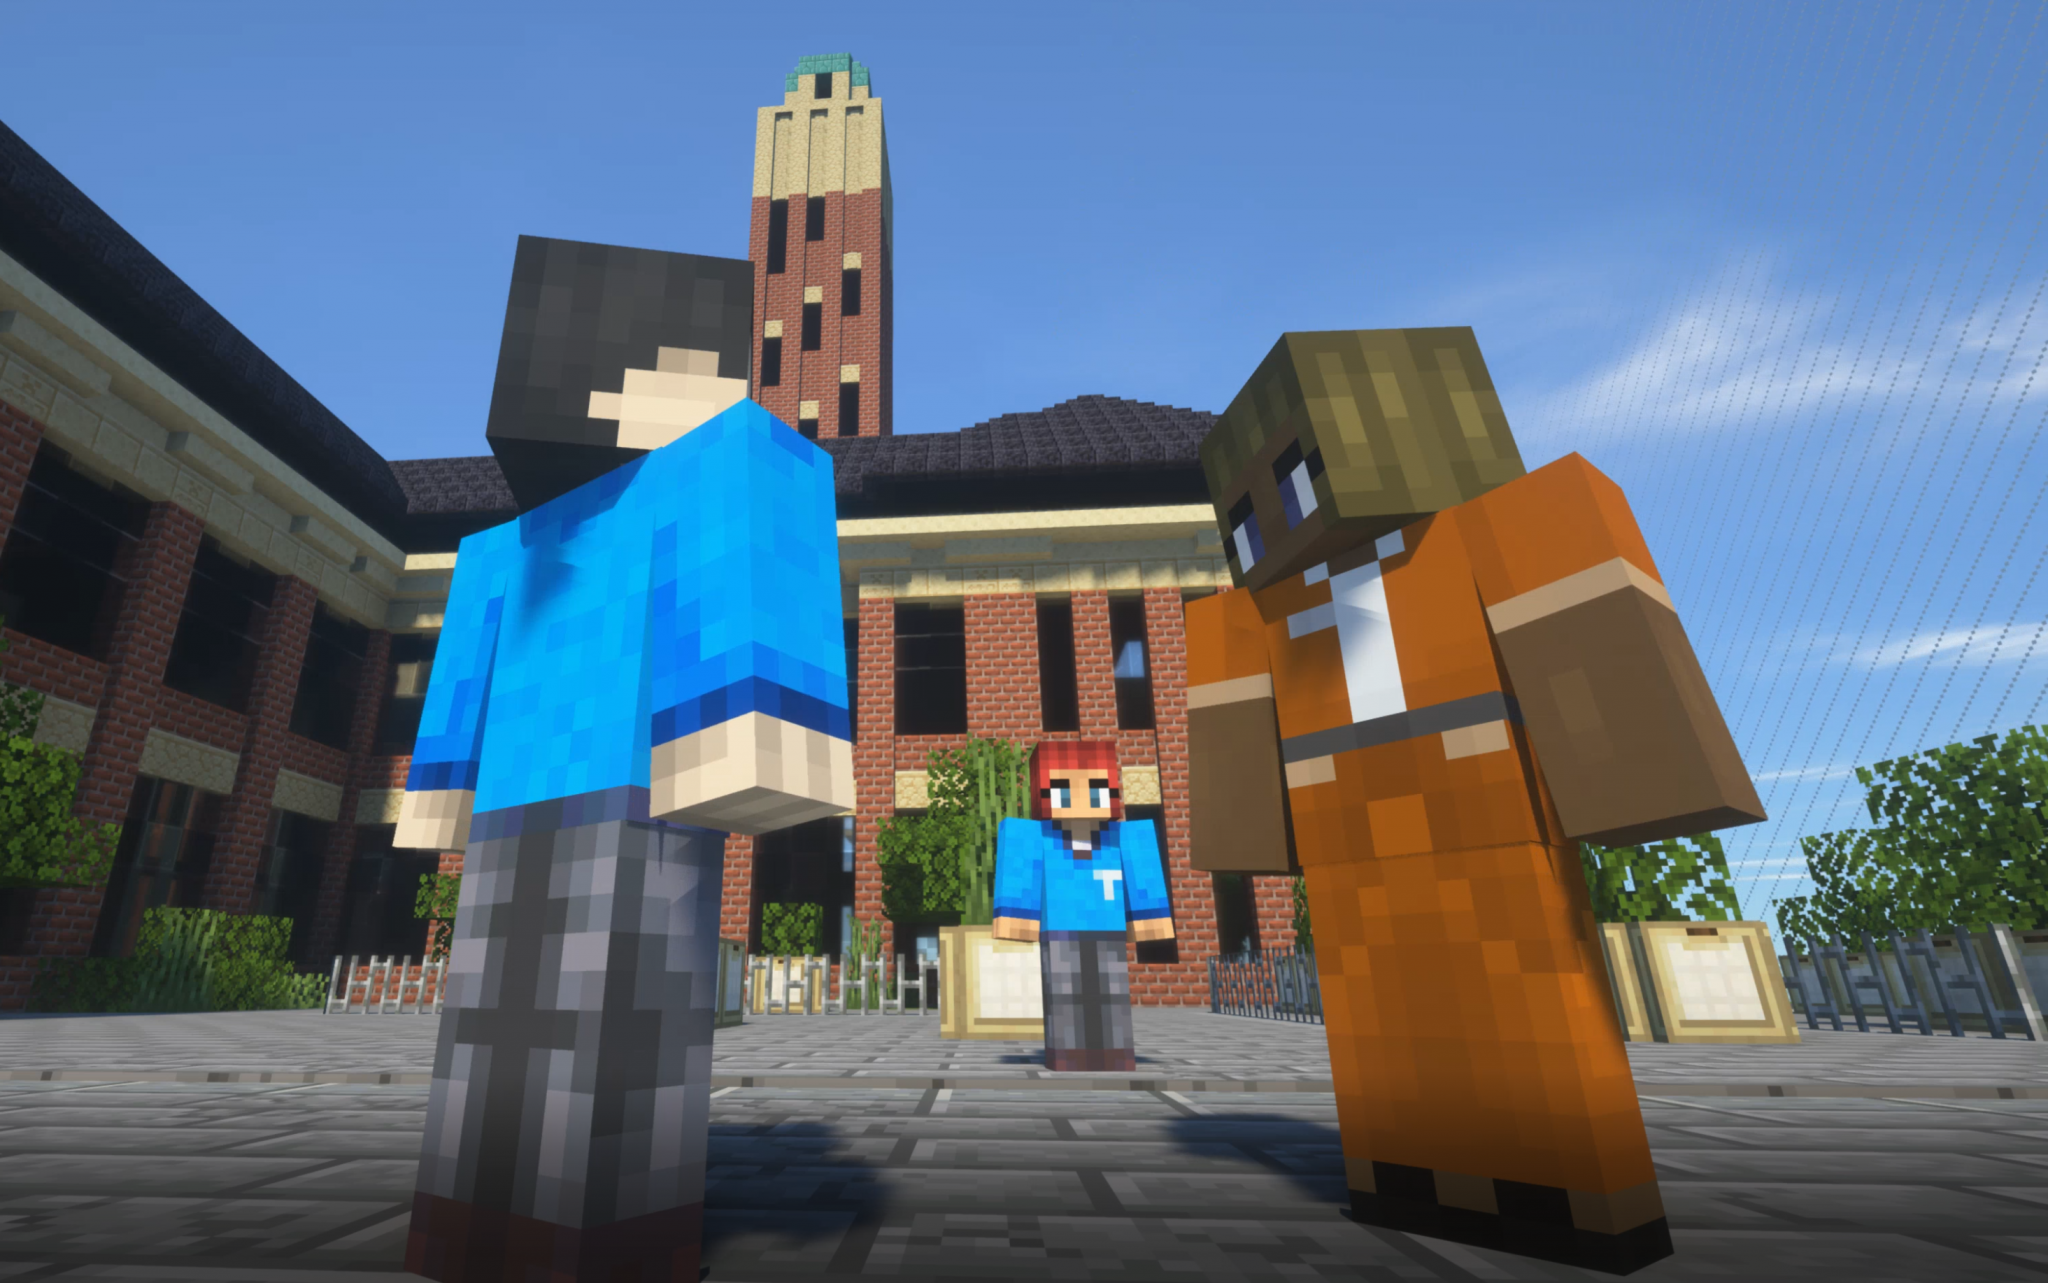 minecraft tour tu delft